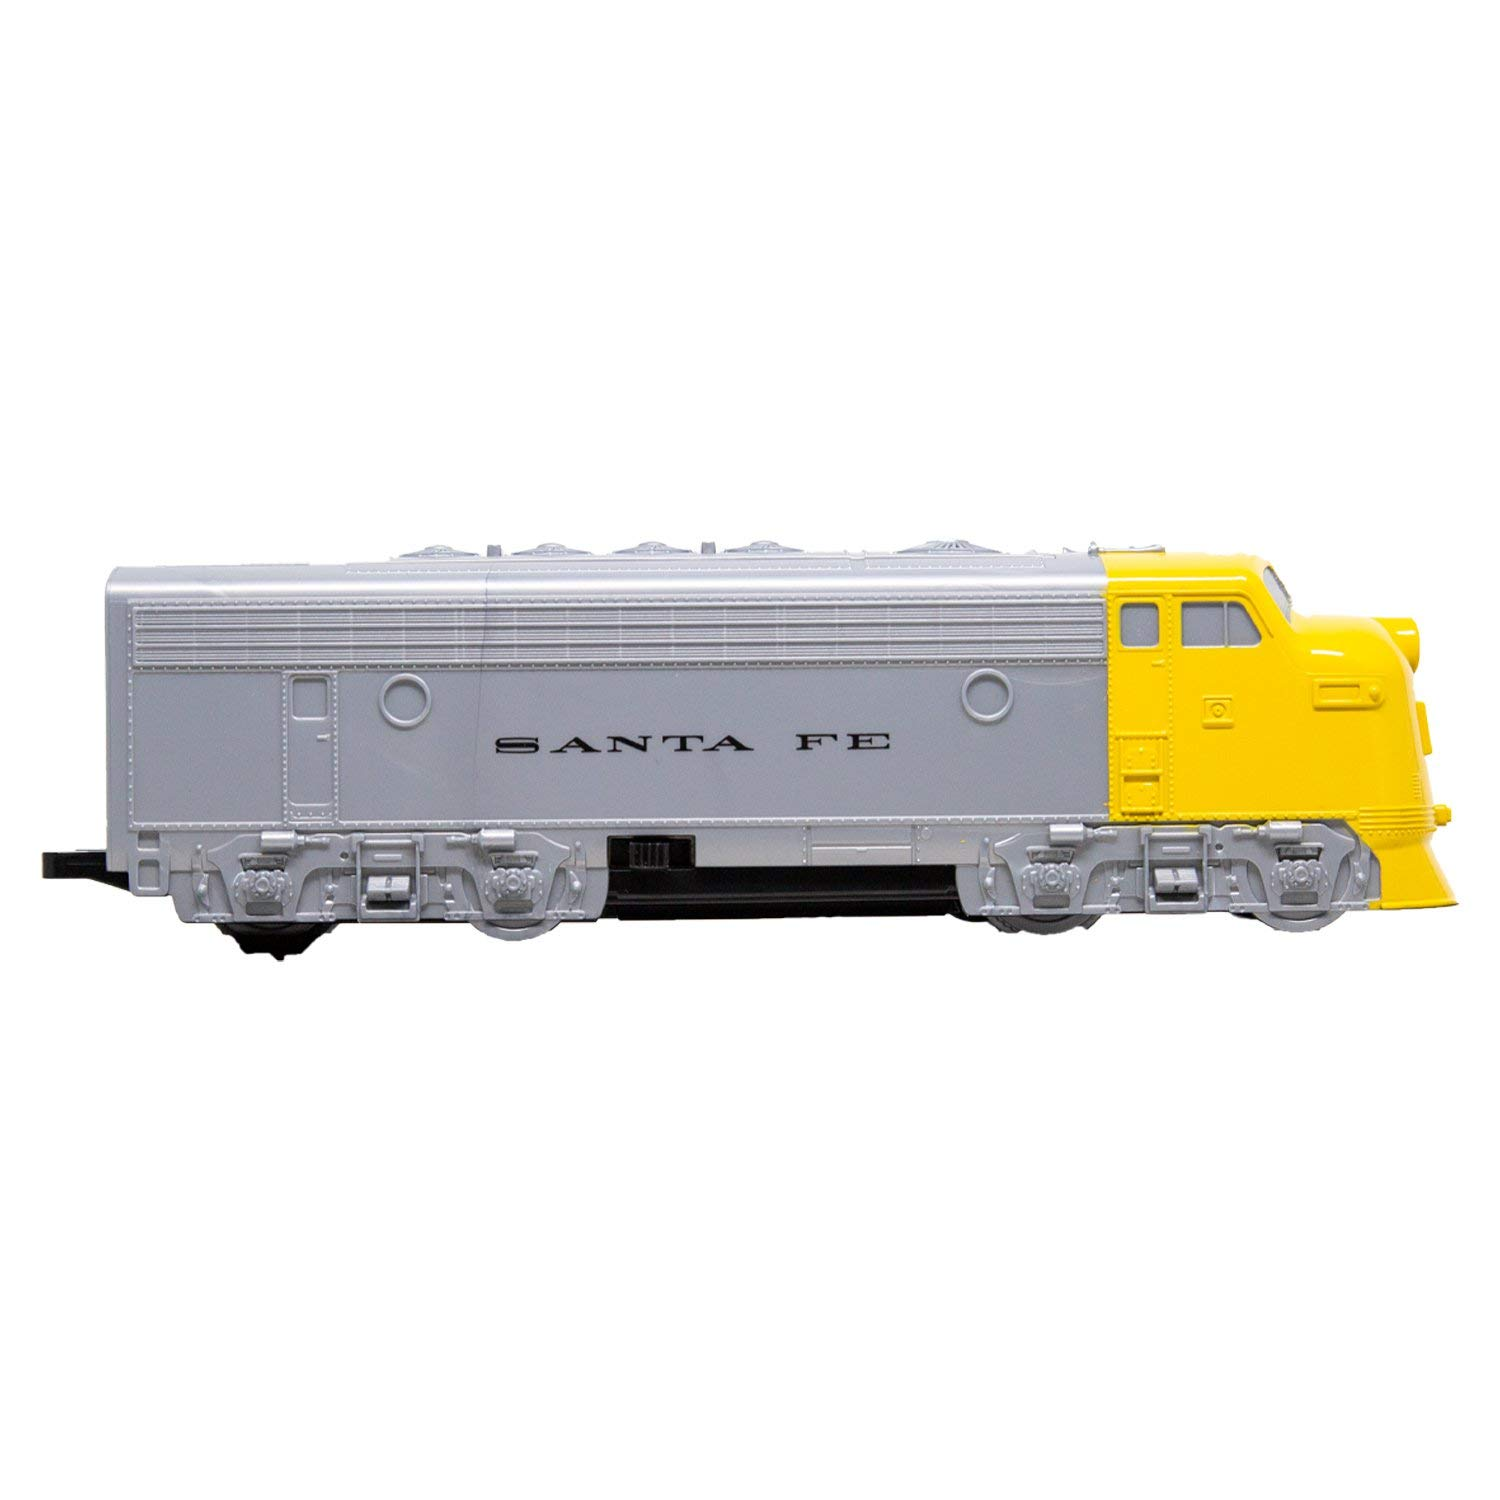 Bachmann Industries Ho Scale Battery Operated Rail Fashion Model Railroading Electronics That Train Electronic Express Kid Set With Sound Yellow Toys Games